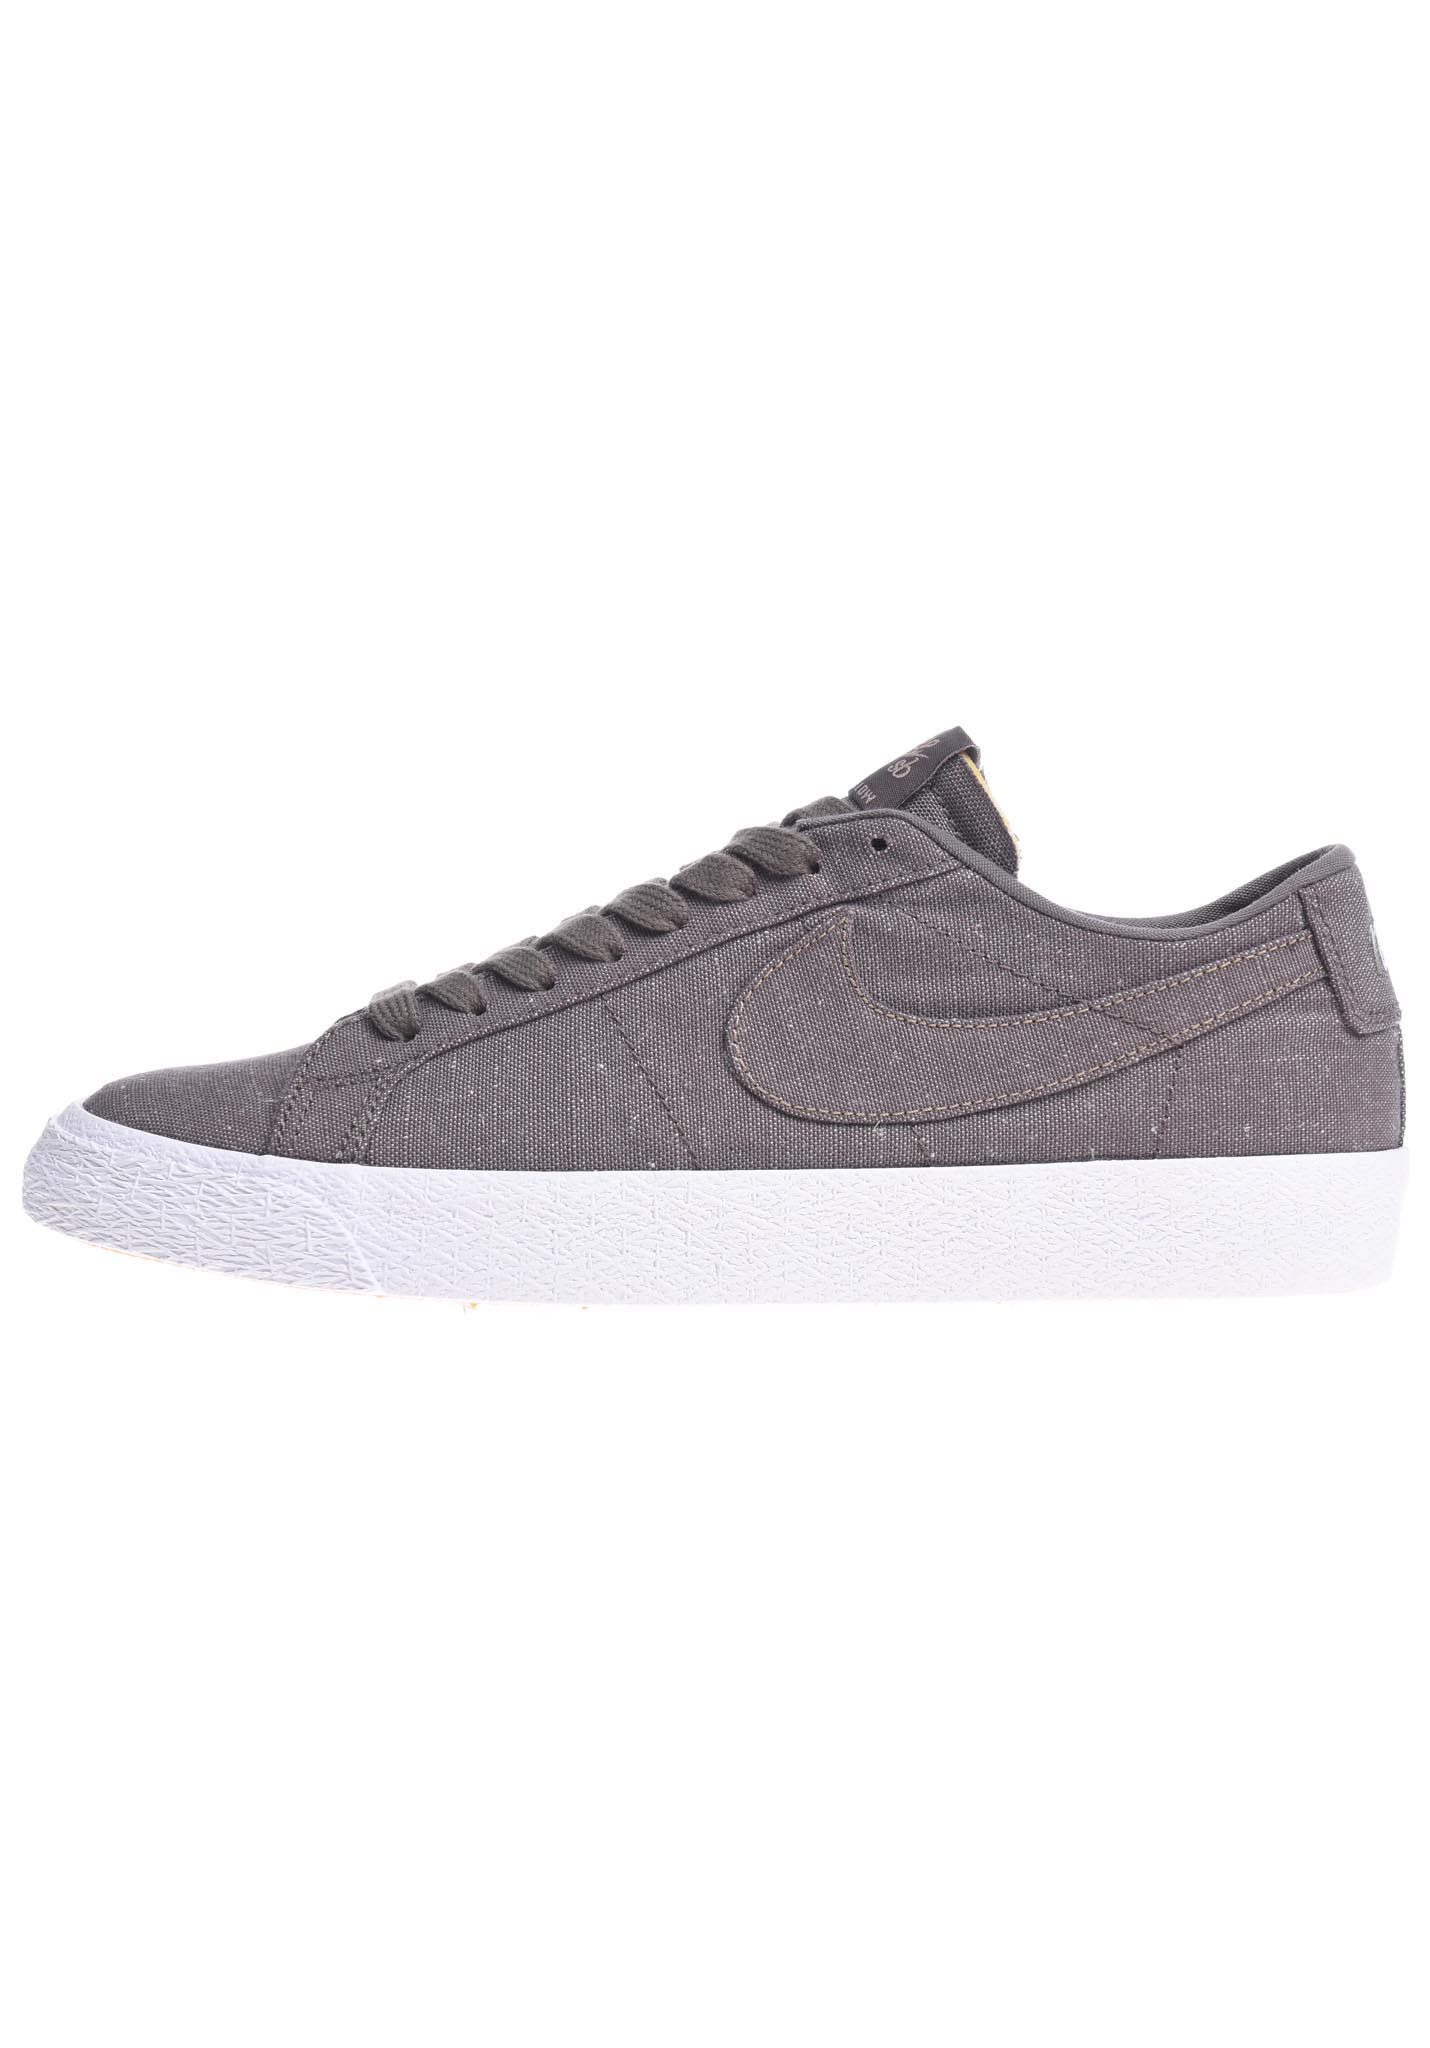 super popular 2738e 7a2c8 NIKE SB Zoom Blazer Low Canvas Decon - Sneakers voor Heren - Grijs - Planet  Sports